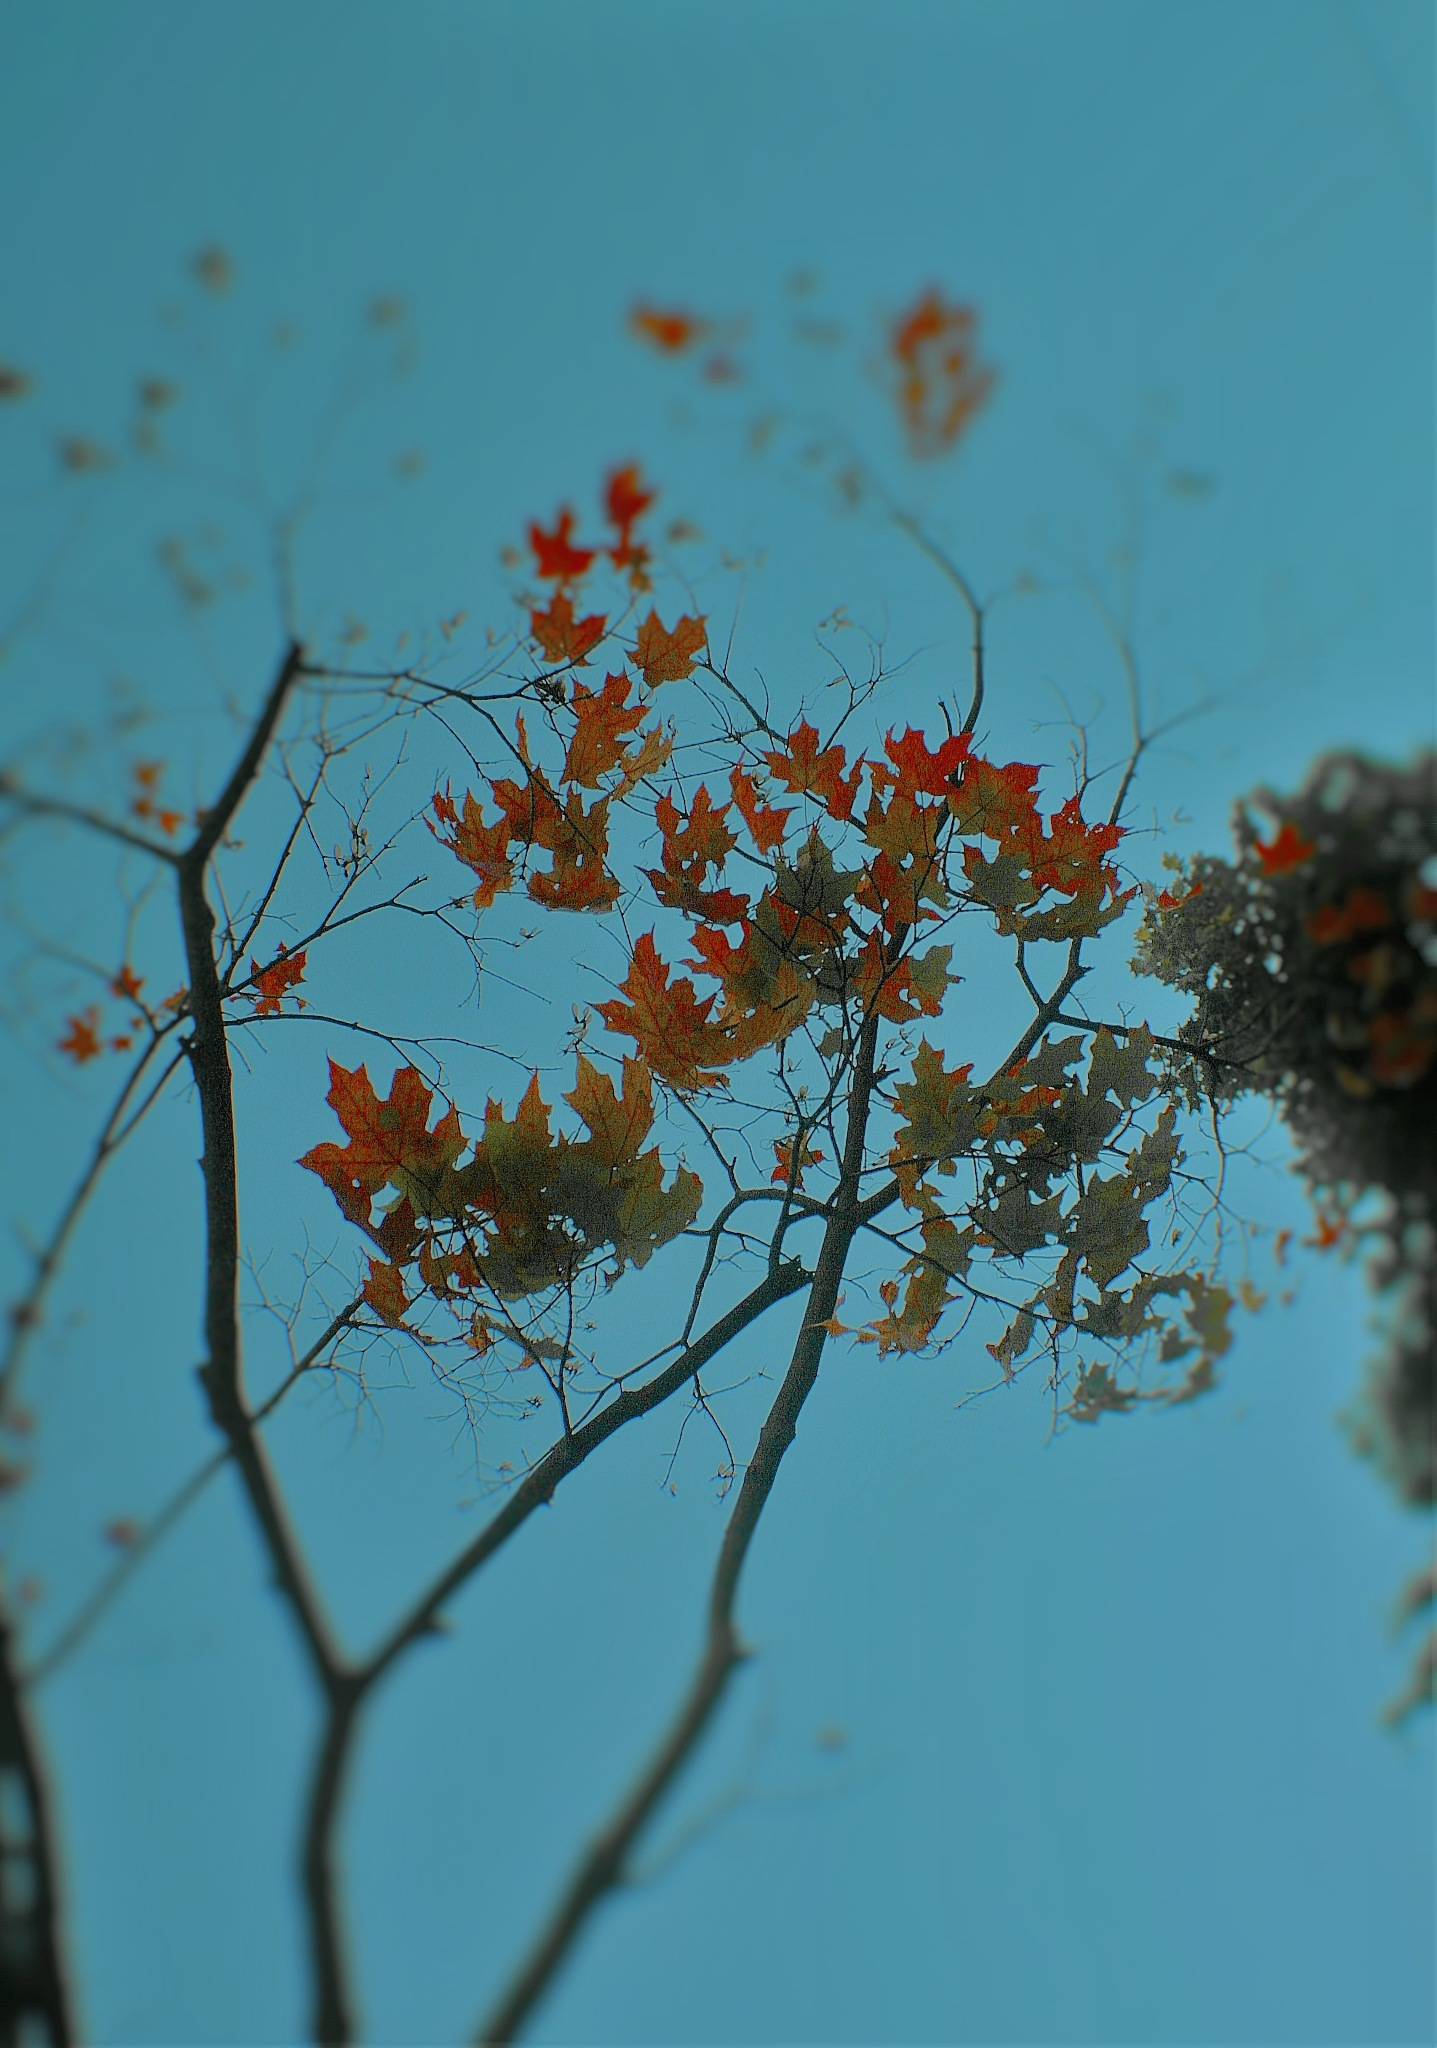 The fall leaves and the blue sky  by Liborio Drogo